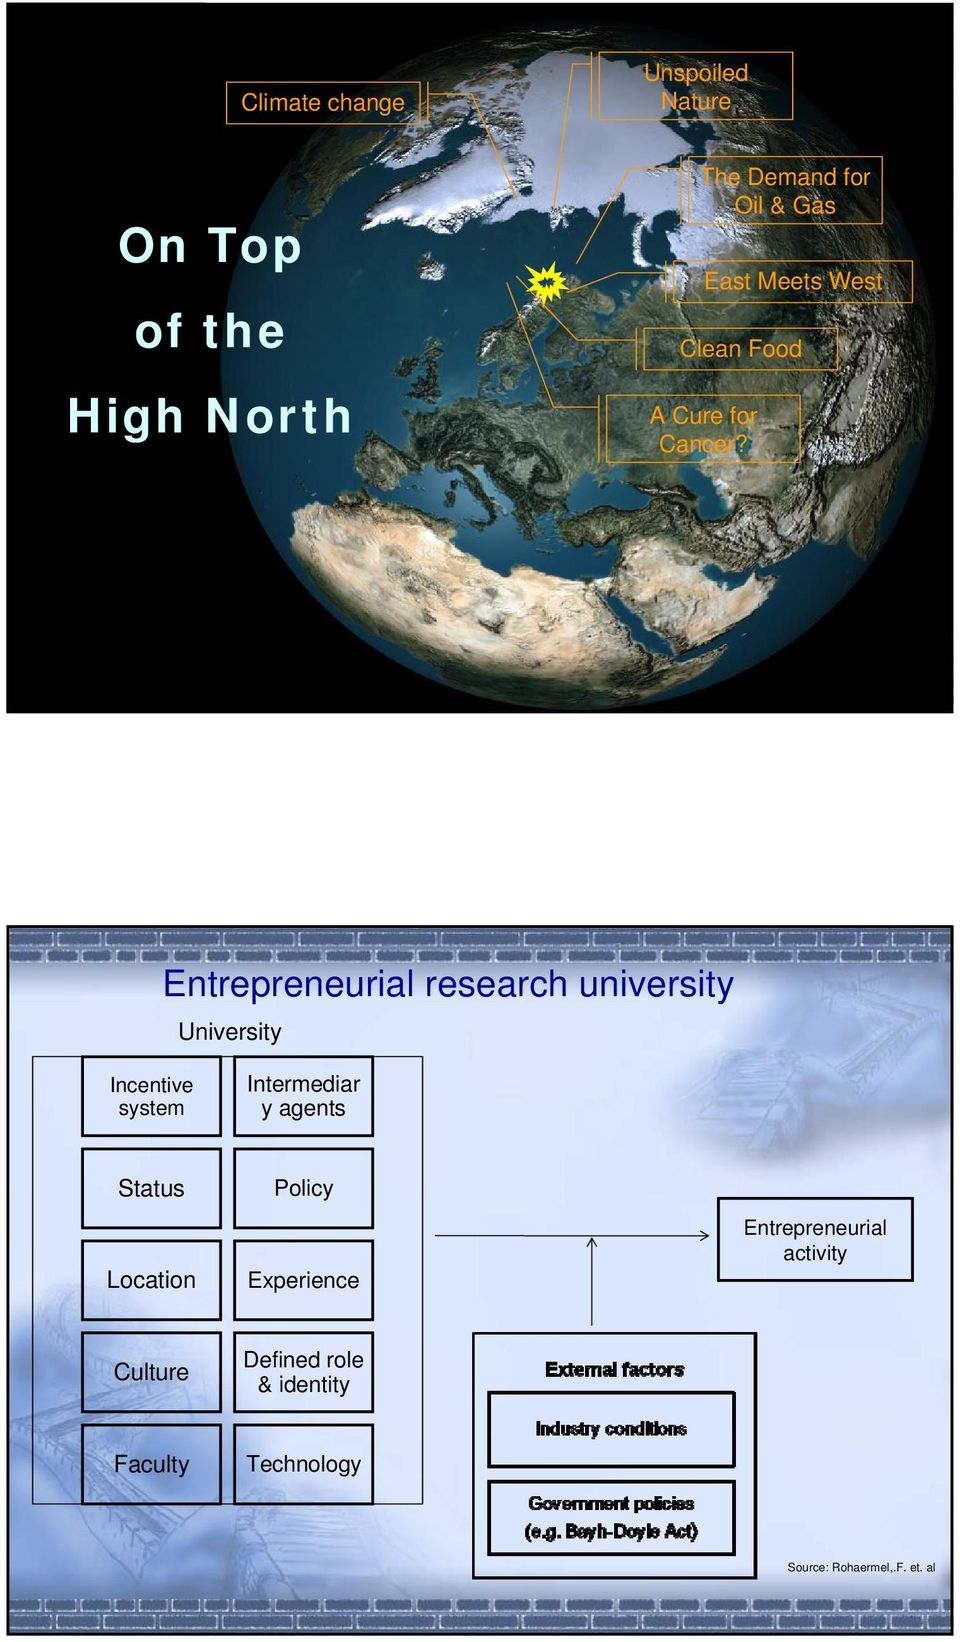 Entrepreneurial research university University Incentive system Intermediar y agents